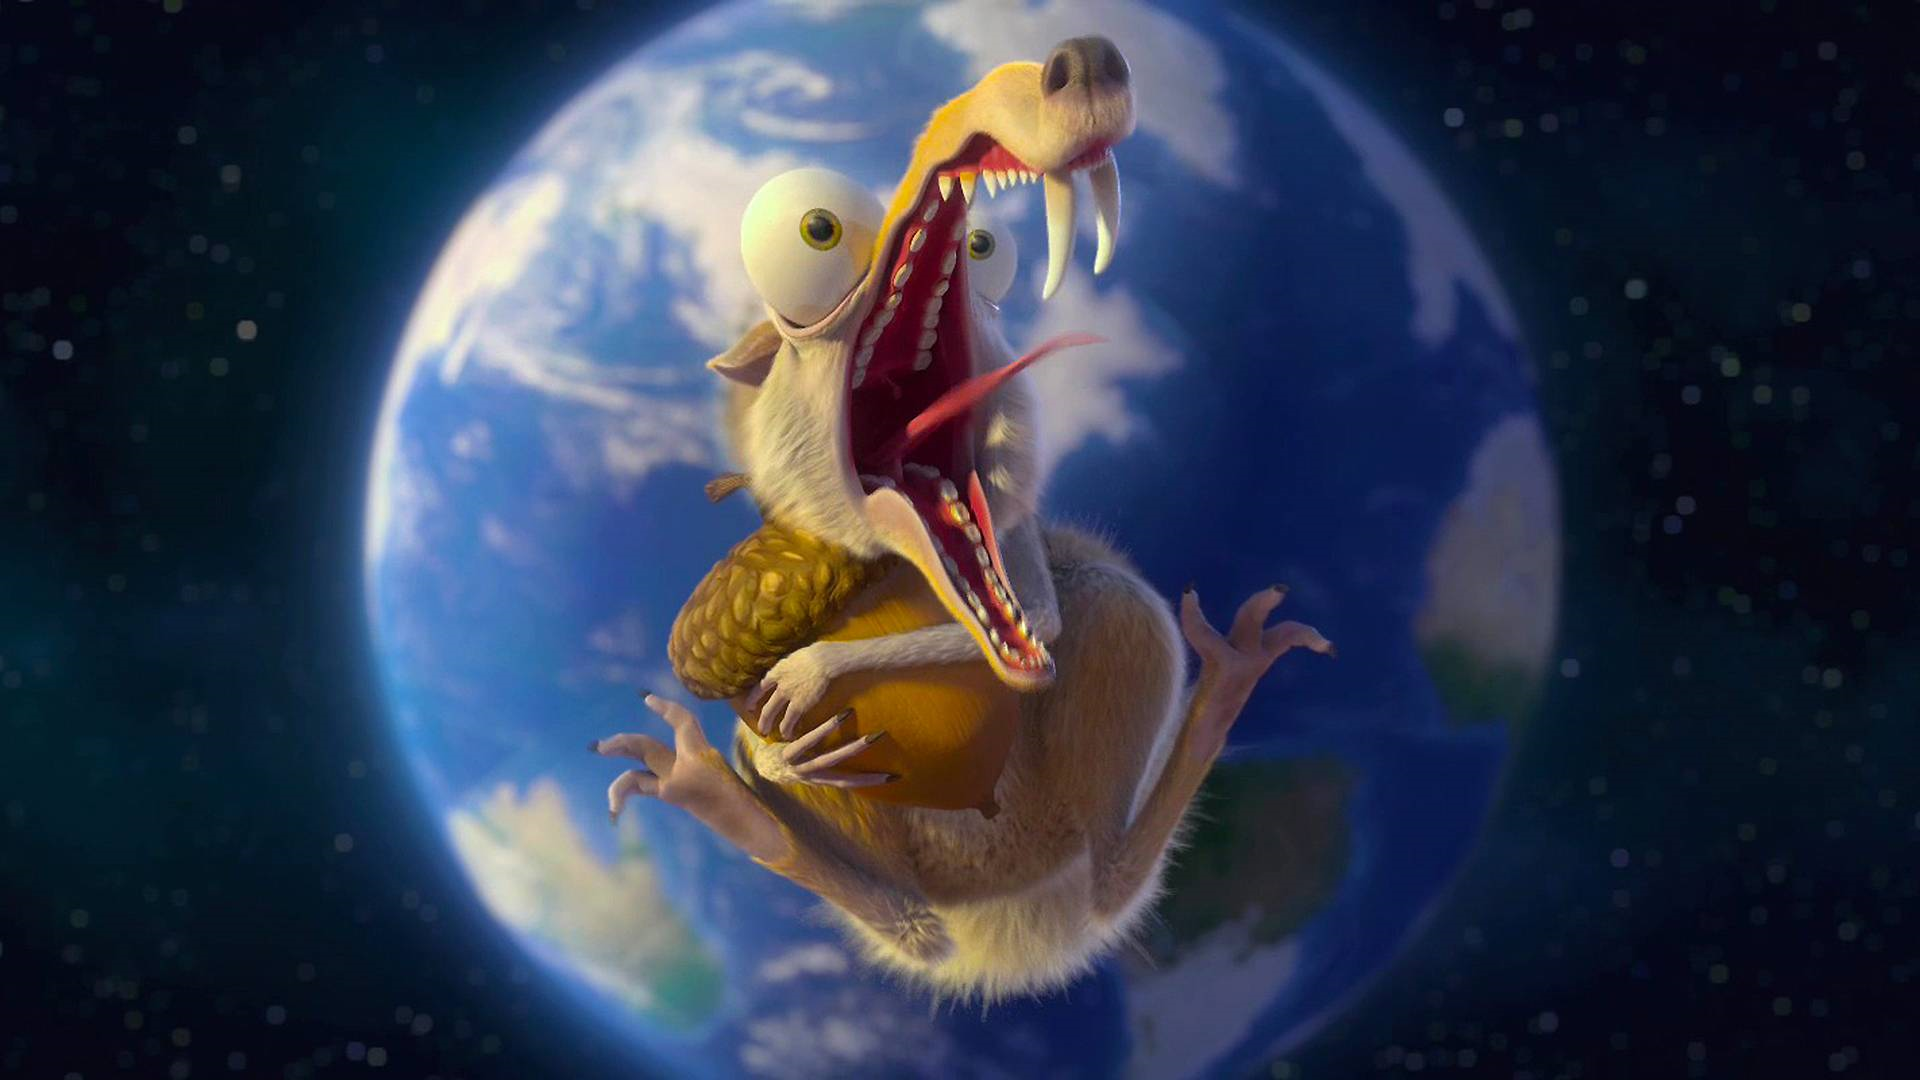 Home Ice Age Movies